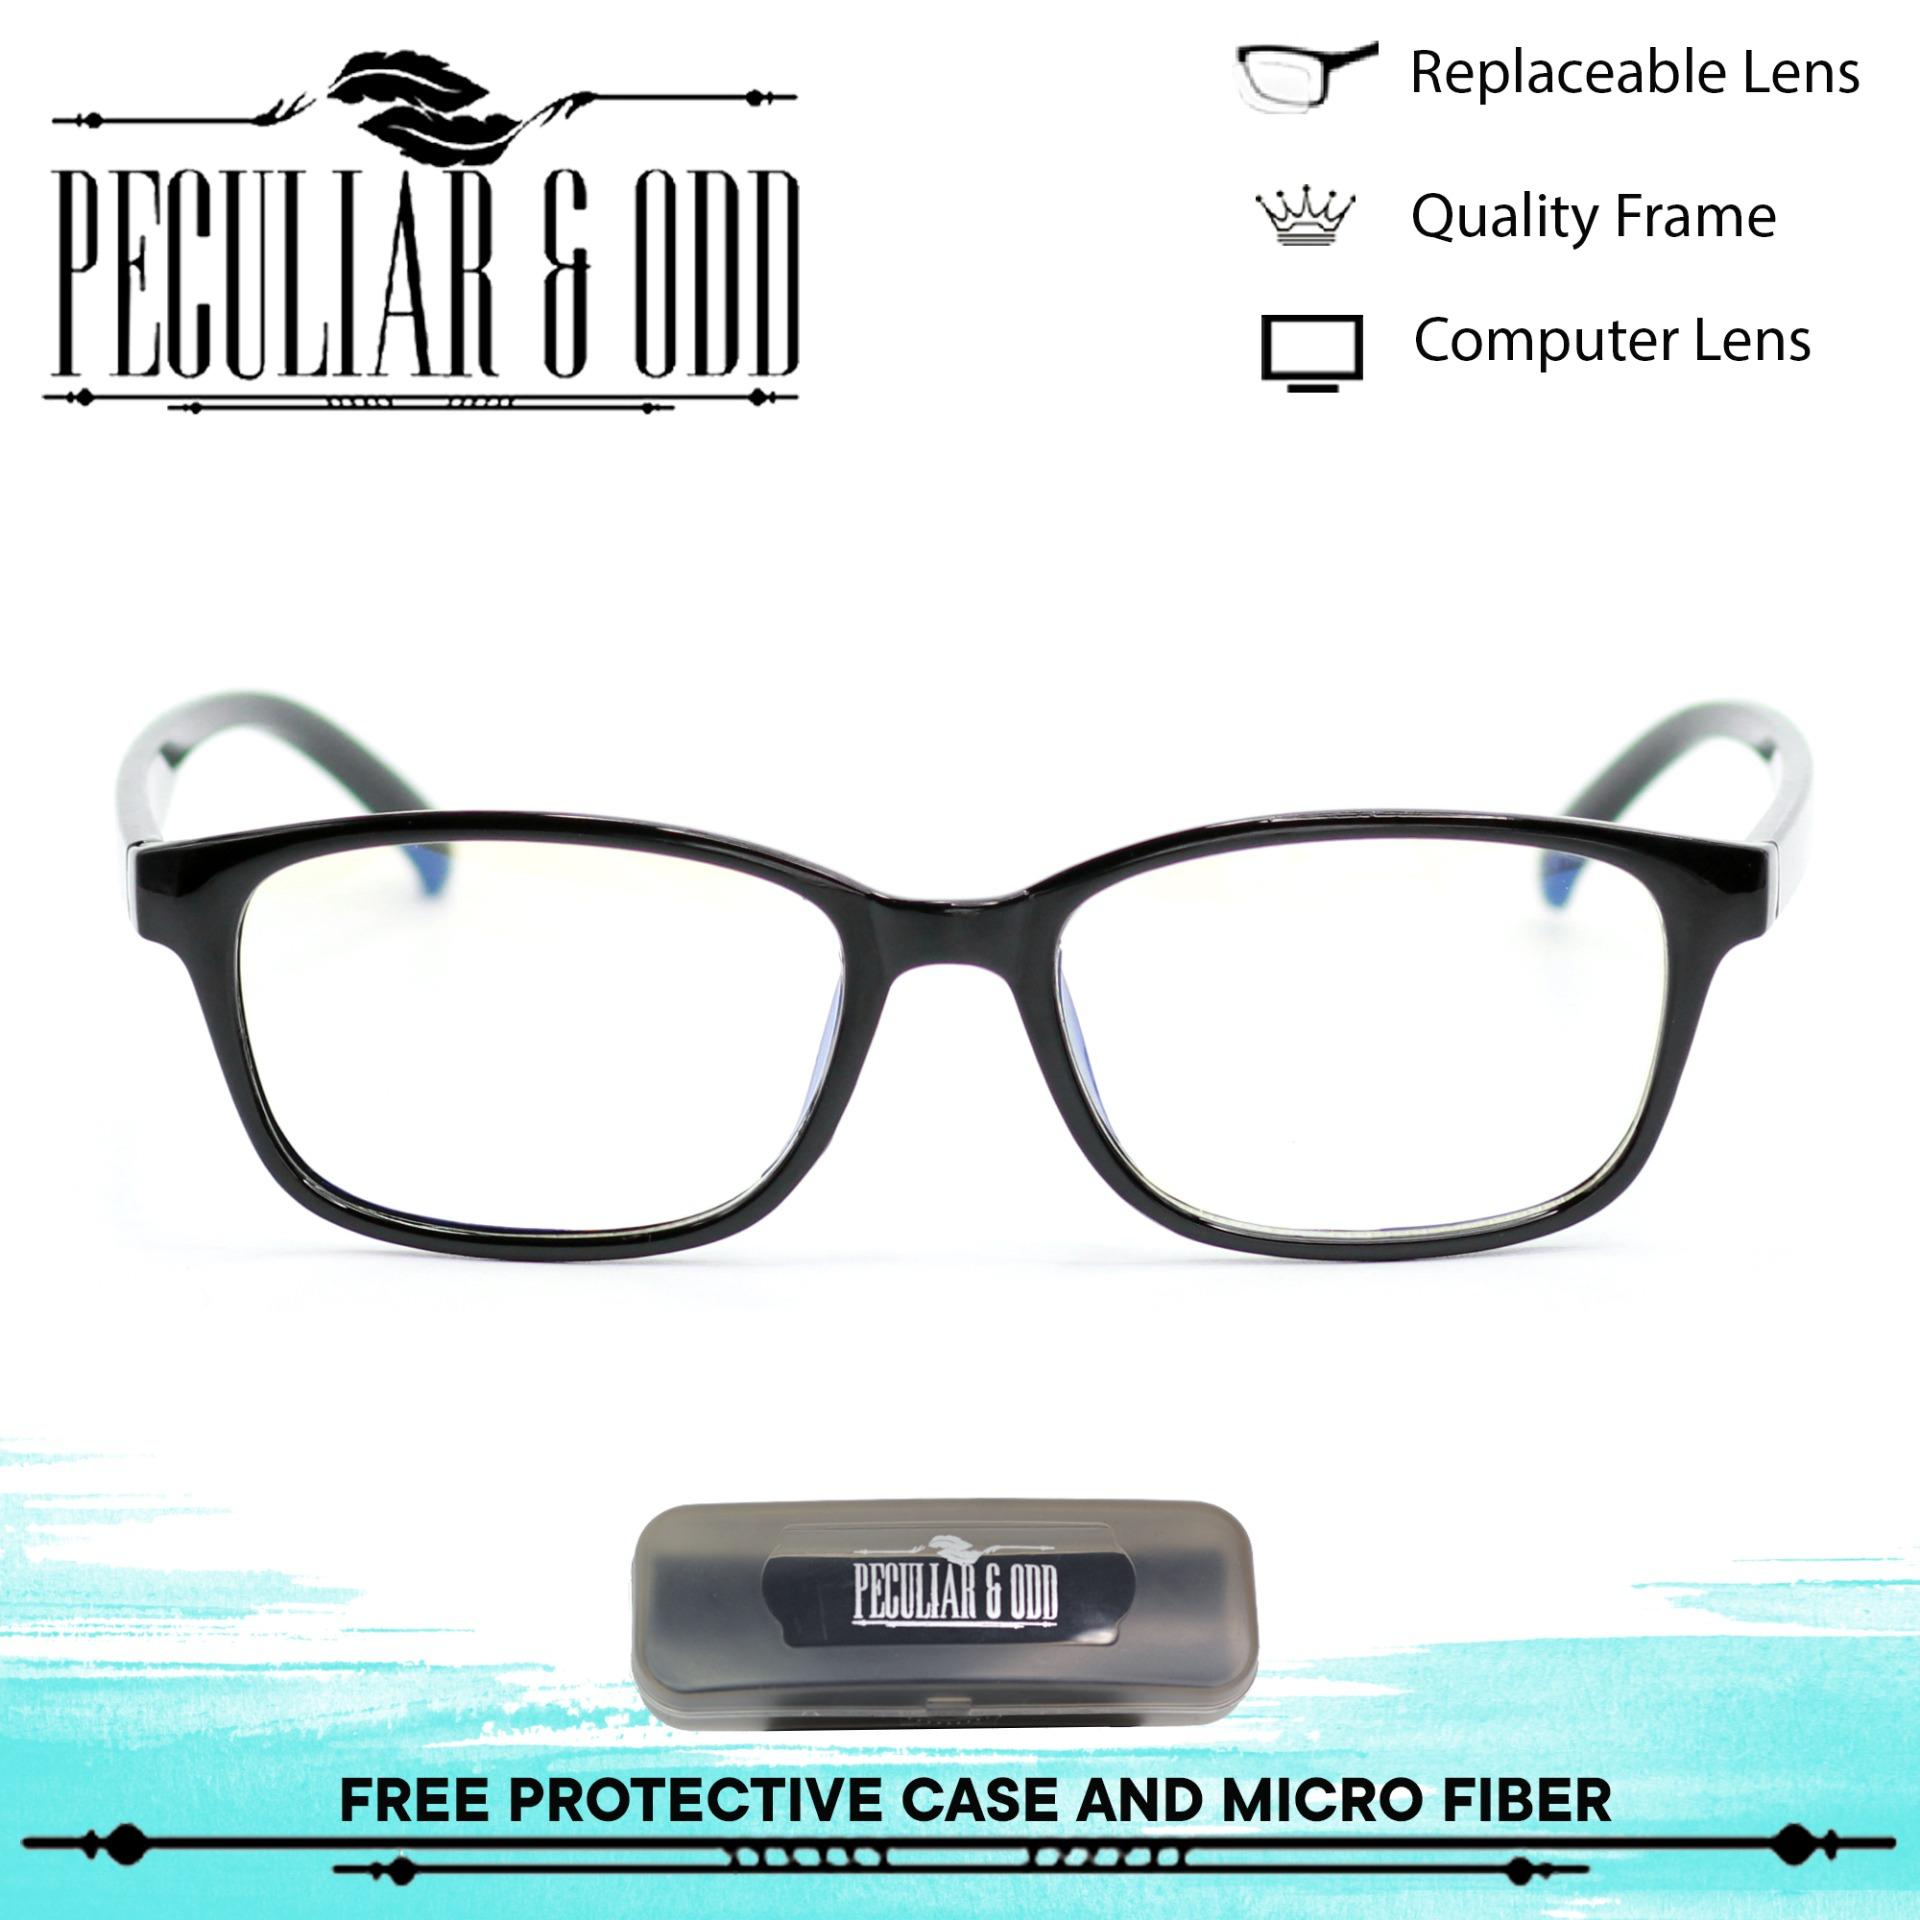 0290ac1c0c Peculiar Square 3028 CoalBlackClear Anti Radiation Computer Eyeglass Optical  Replaceable Eyewear Unisex new